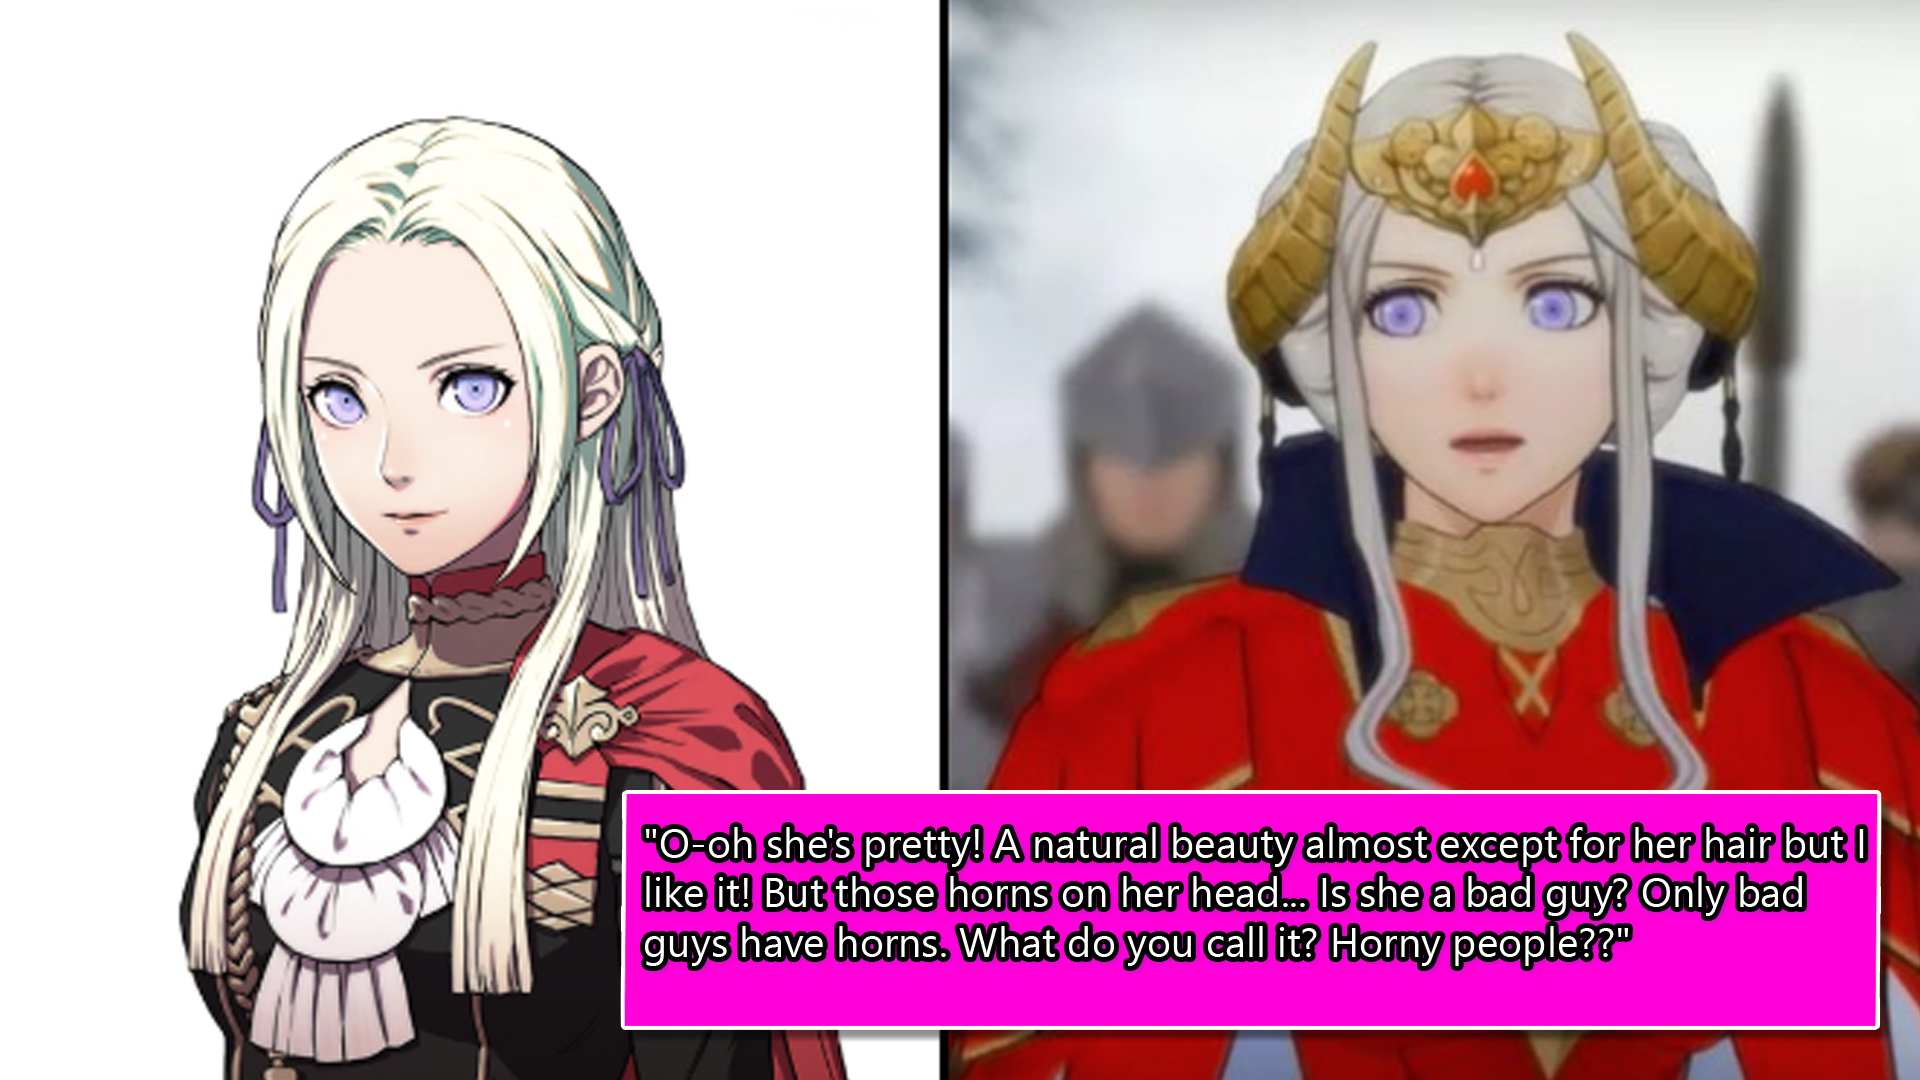 A Mum Rates All The Characters In Fire Emblem: Three Houses Based On Their Looks